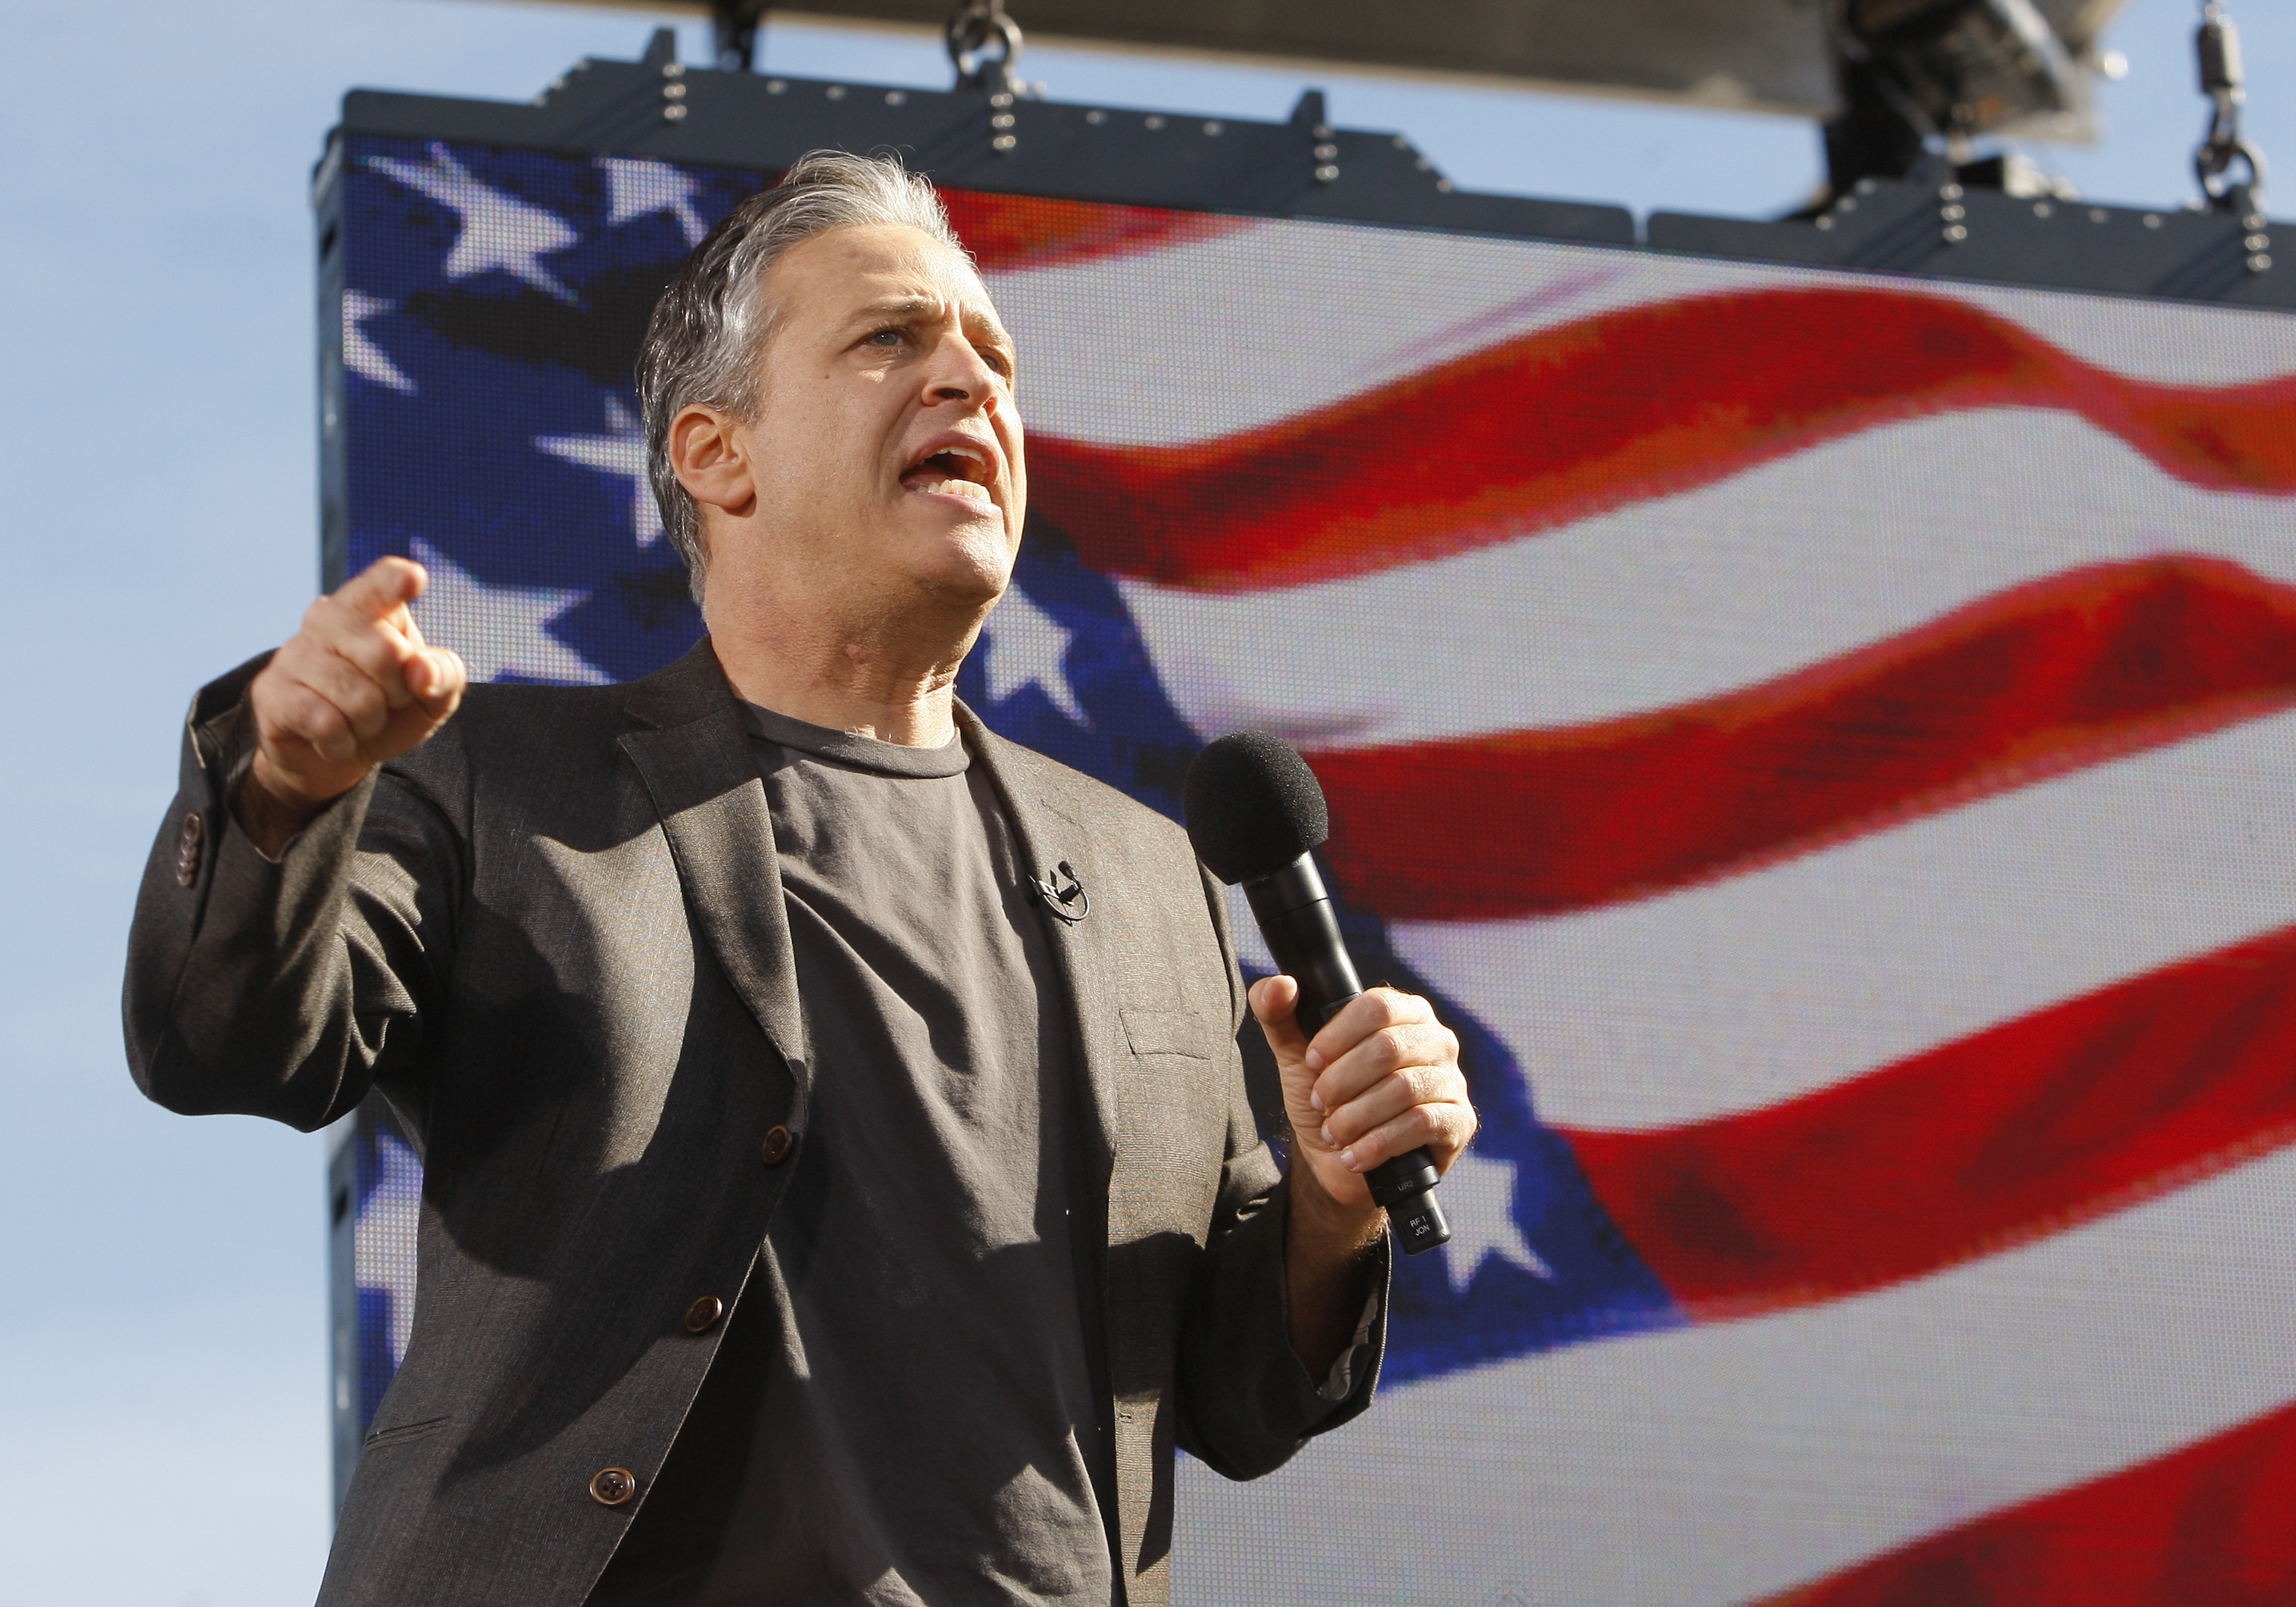 """Comedian Jon Stewart addresses the crowd during the """"Rally to Restore Sanity and/or Fear"""" in Washington, October 30, 2010."""